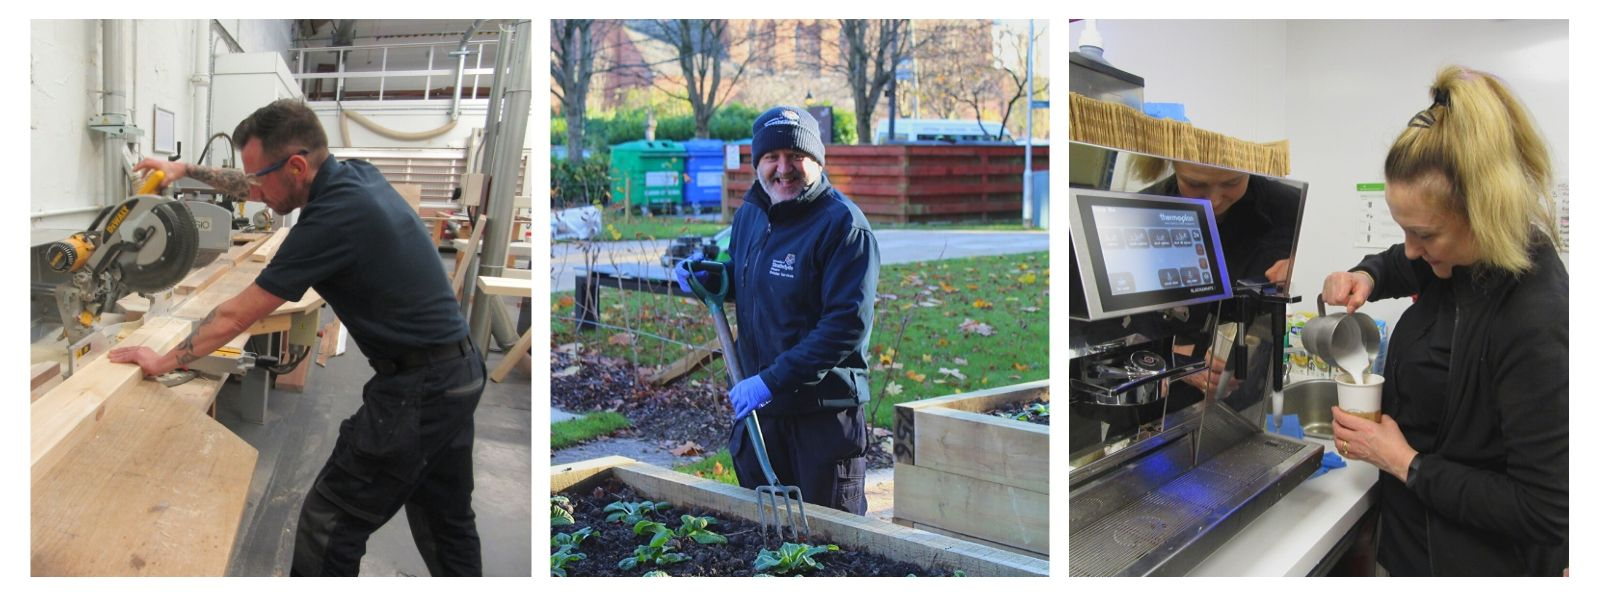 Estates staff at work: joiner, gardener and food and beverage assistant